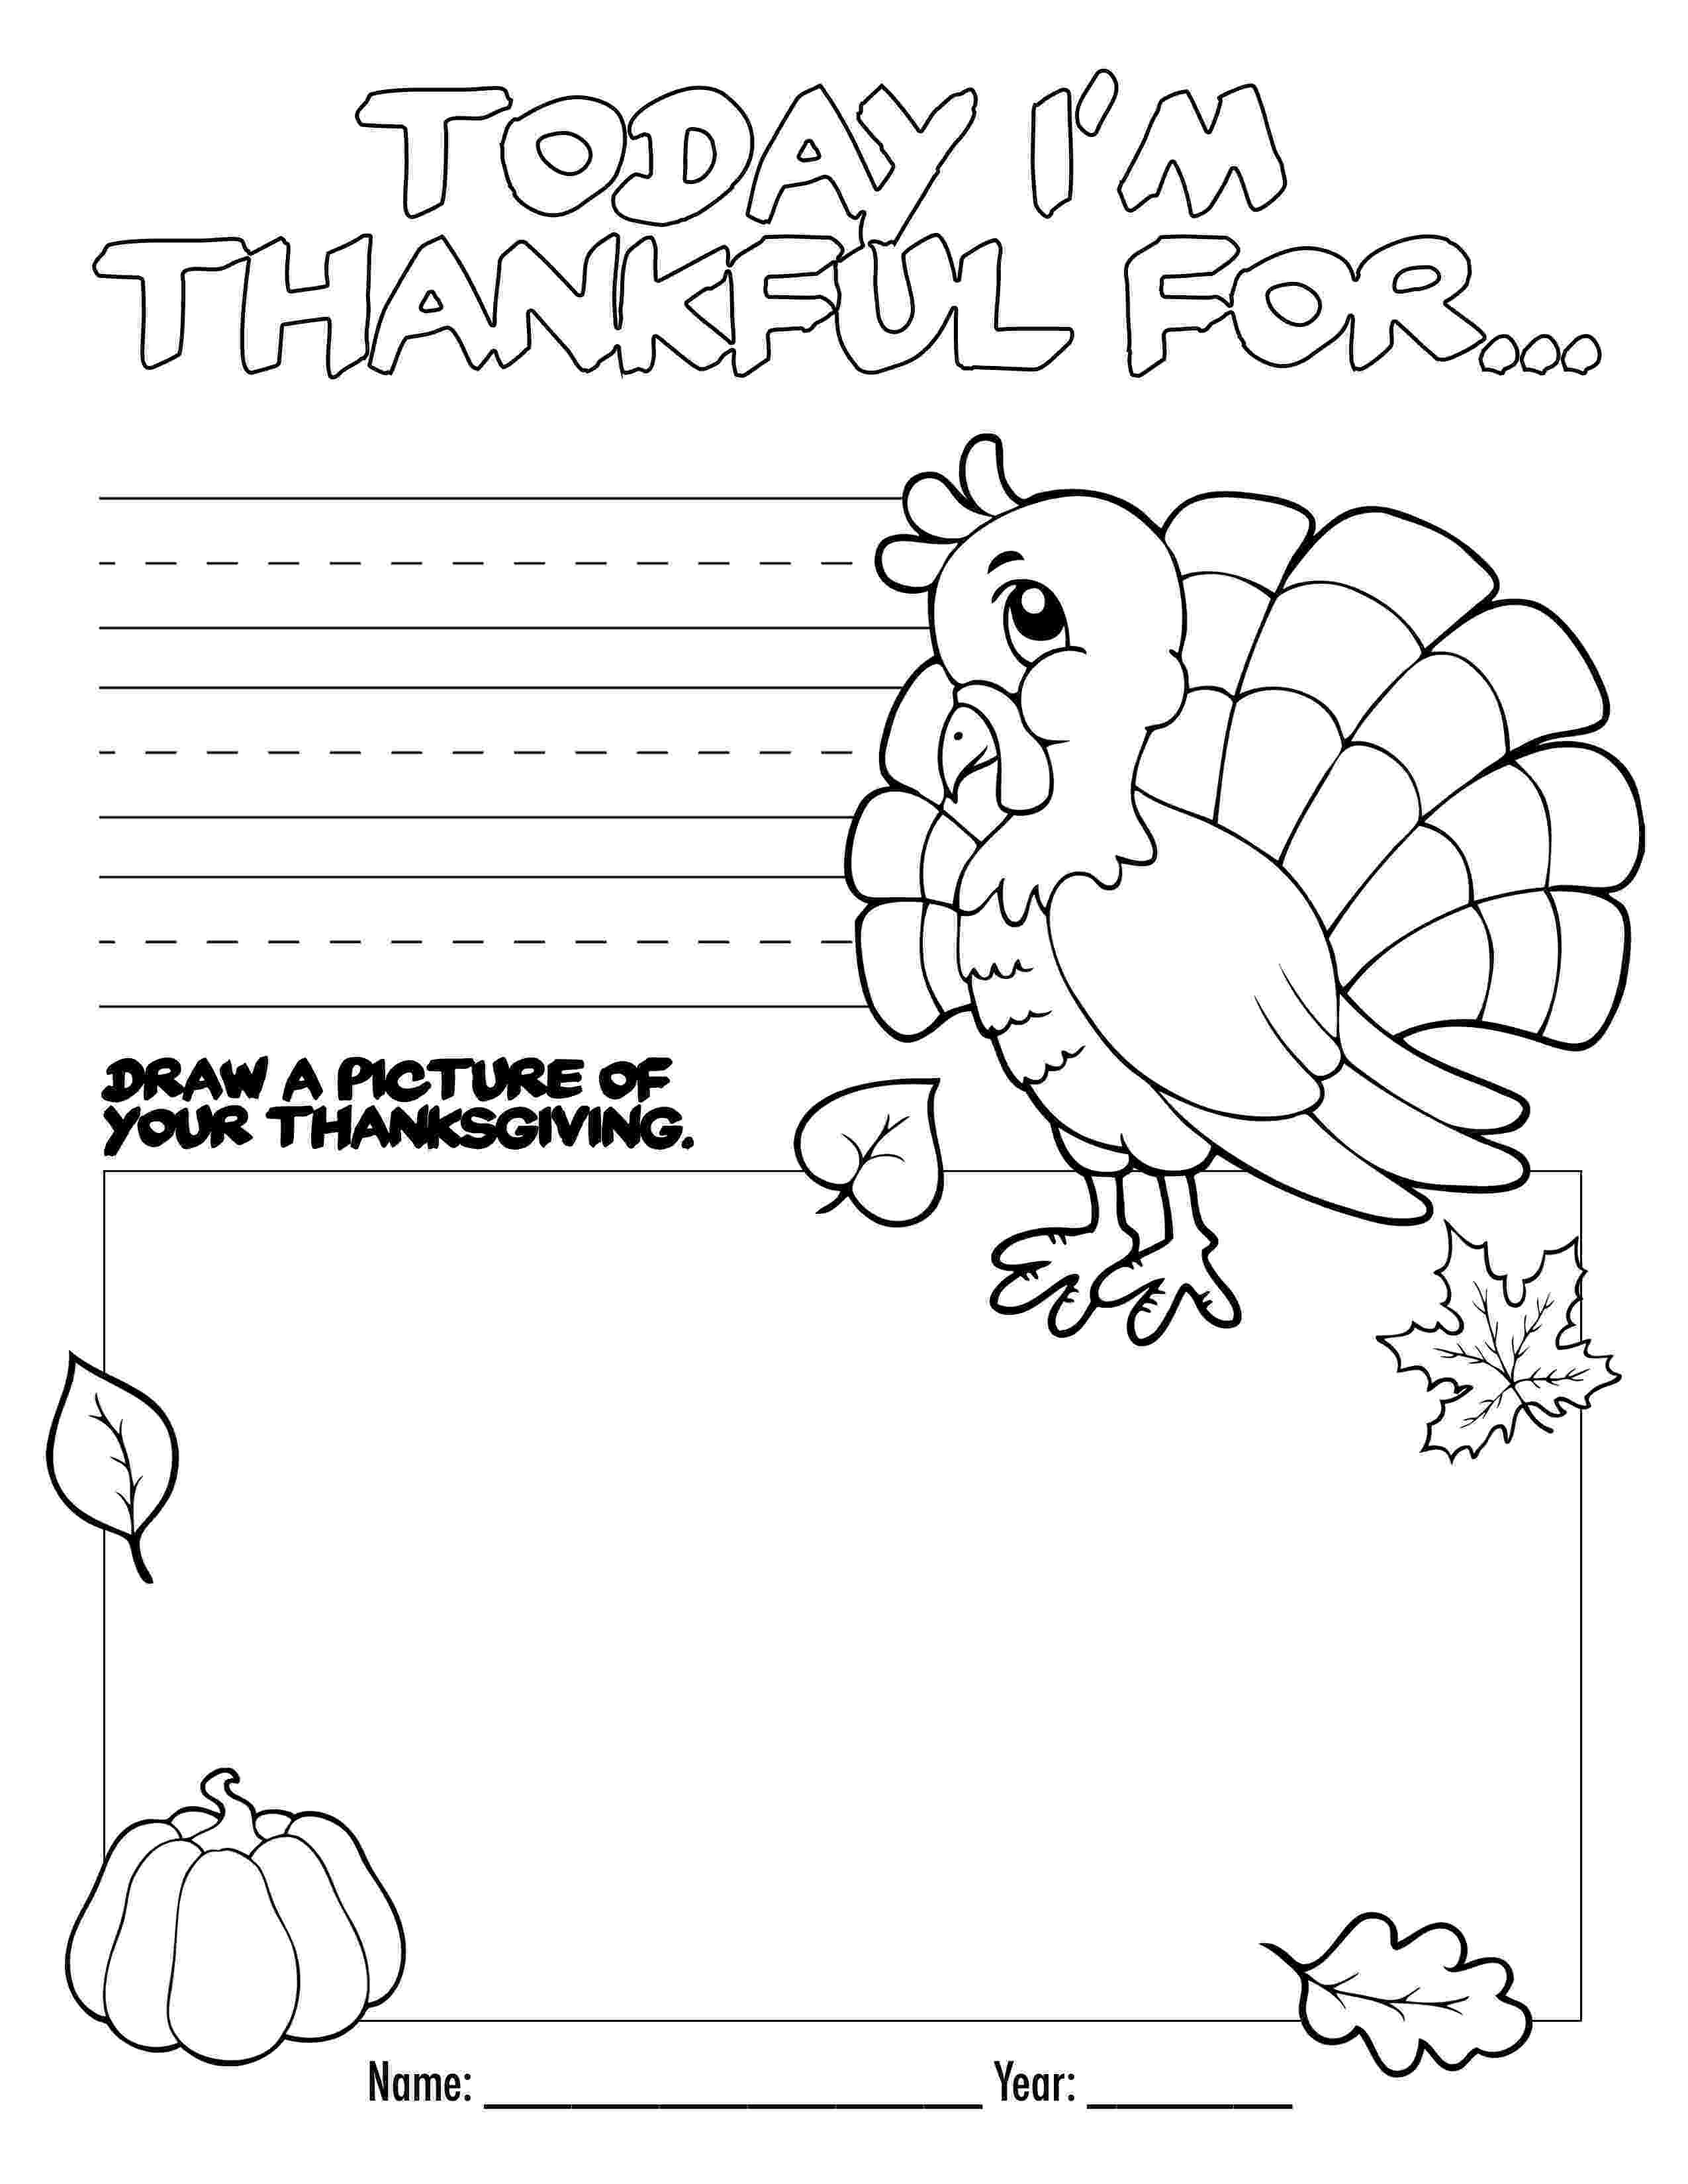 printable thanksgiving coloring book happy thanksgiving coloring pages to download and print thanksgiving printable coloring book